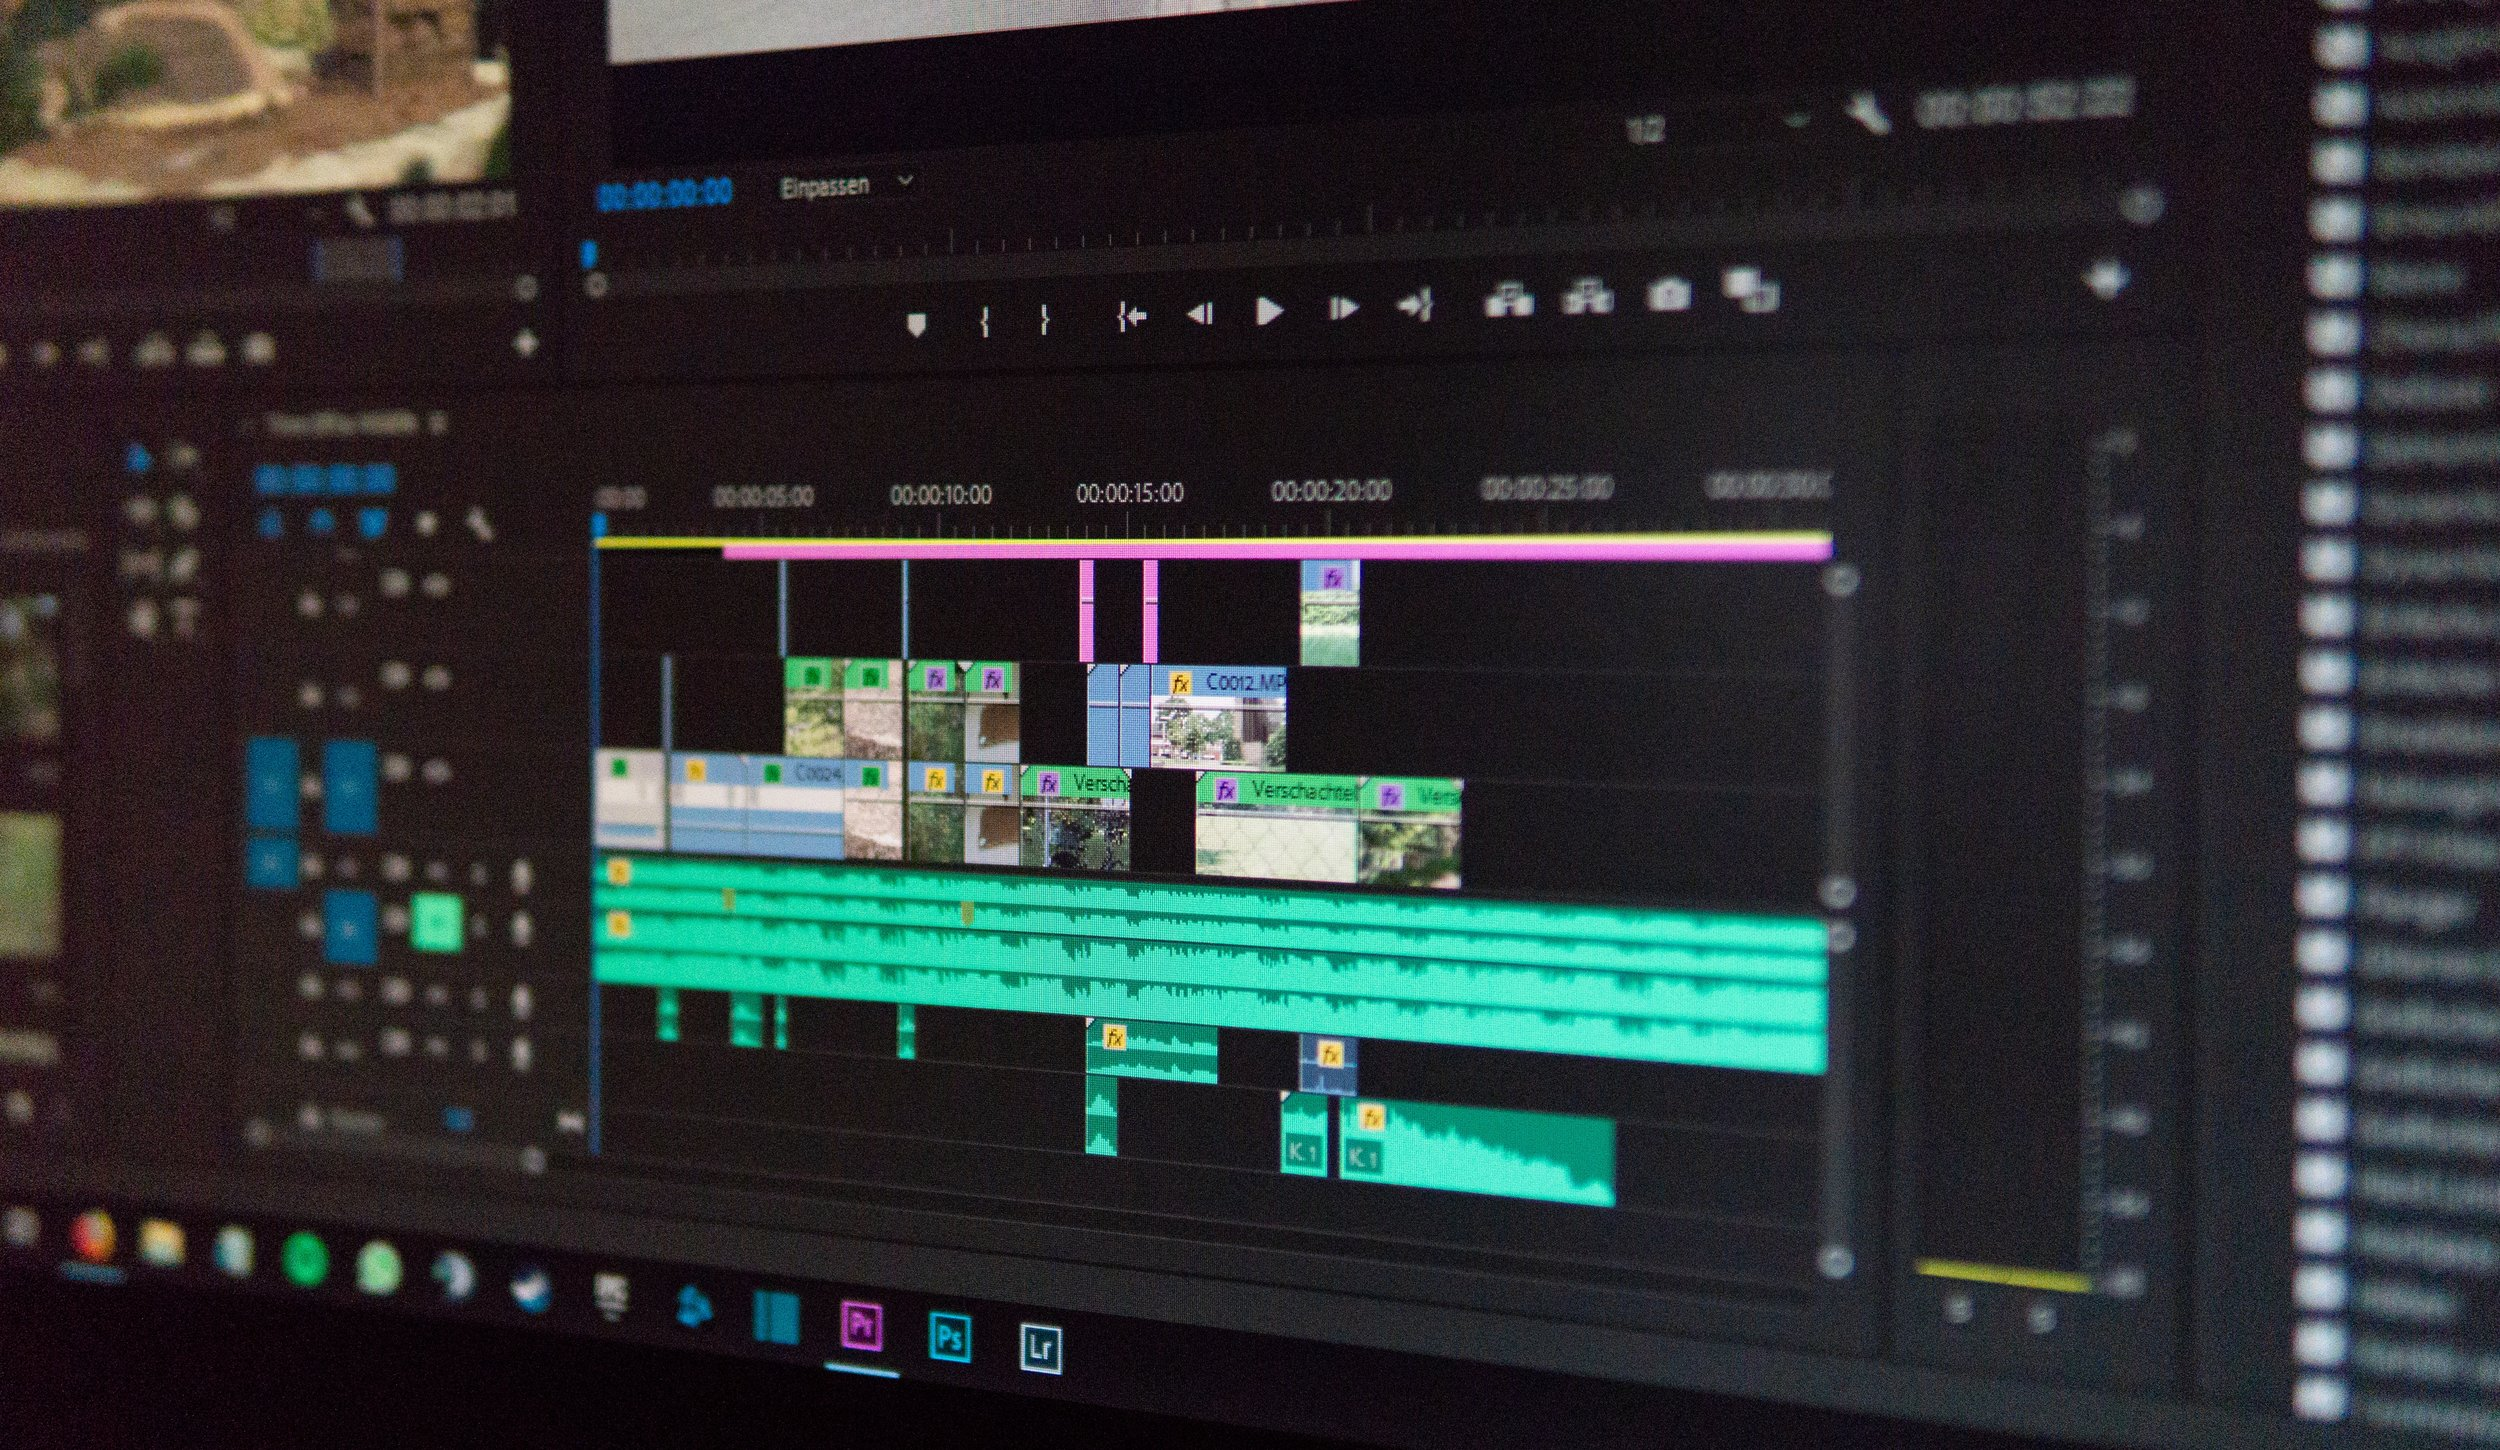 Video editing - By the end of this short course you will have gained understanding of how to edit simple videos in Premiere Pro and how to work with editing dialogue as well.